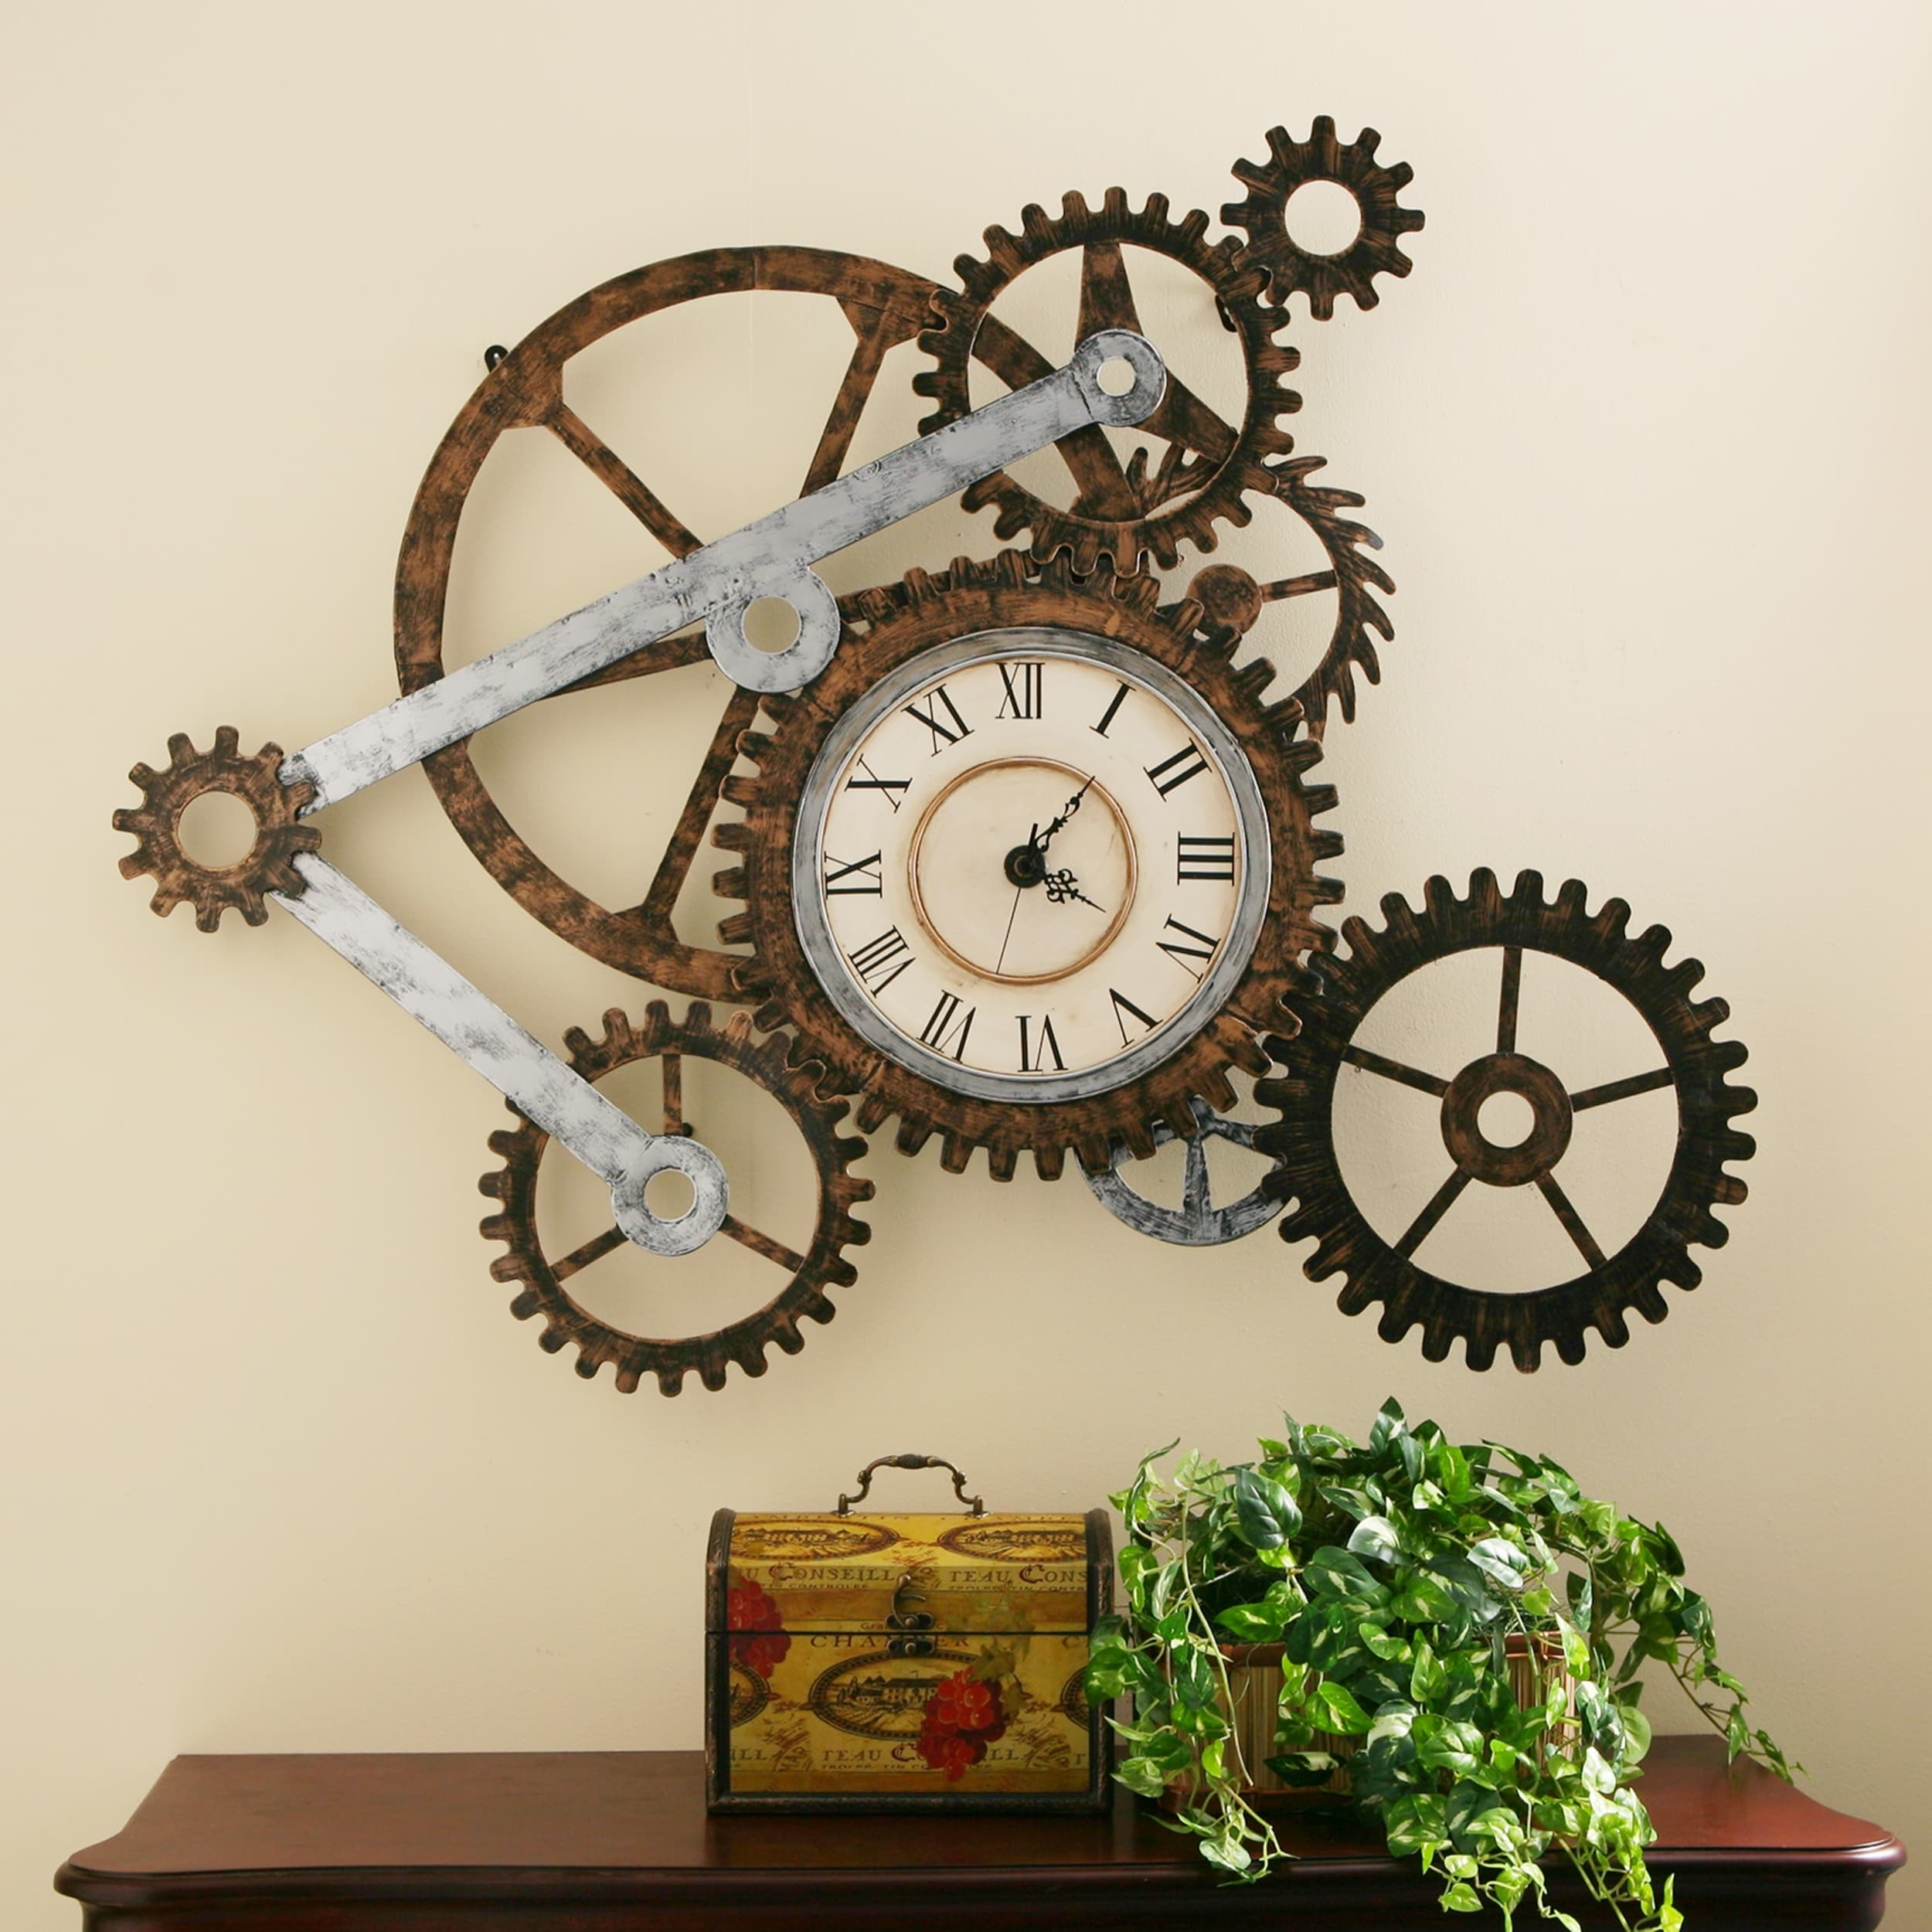 Harper Blvd Clock And Gears Wall Art – Free Shipping On Orders Throughout Most Recent Clock Wall Accents (Gallery 1 of 15)